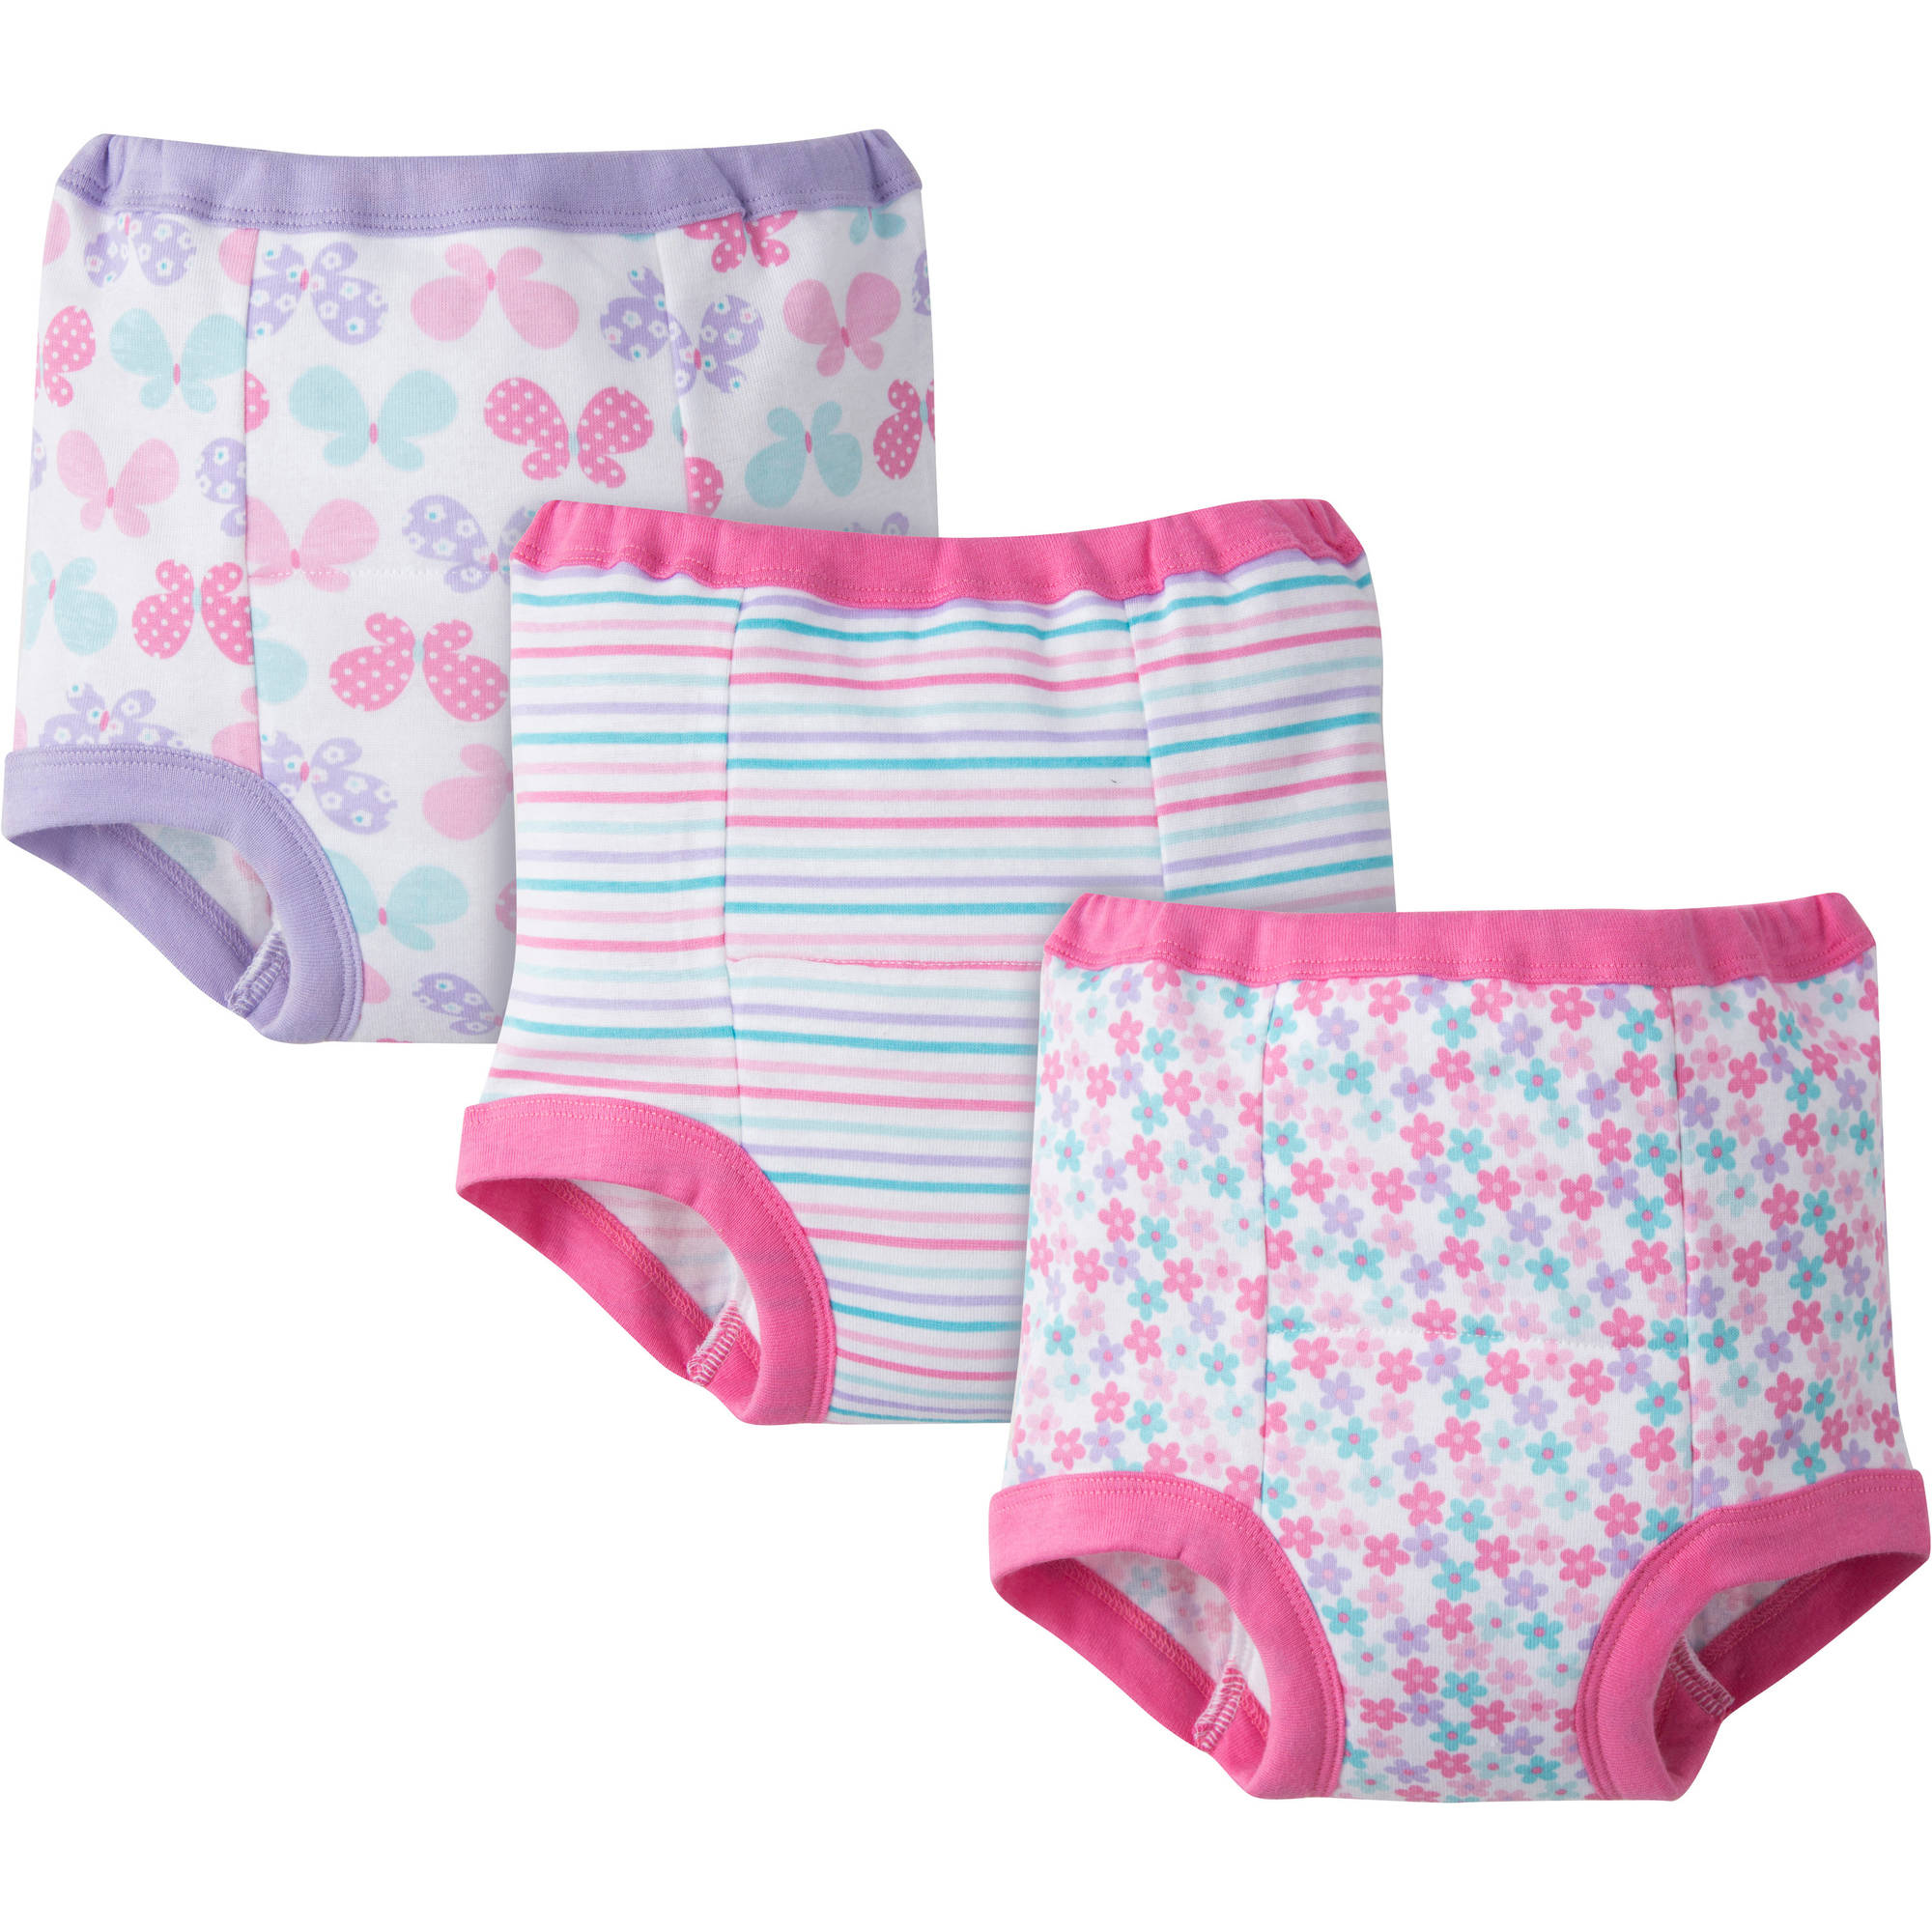 Gerber Toddler Girl's Assorted Training Pants, 3-Pack